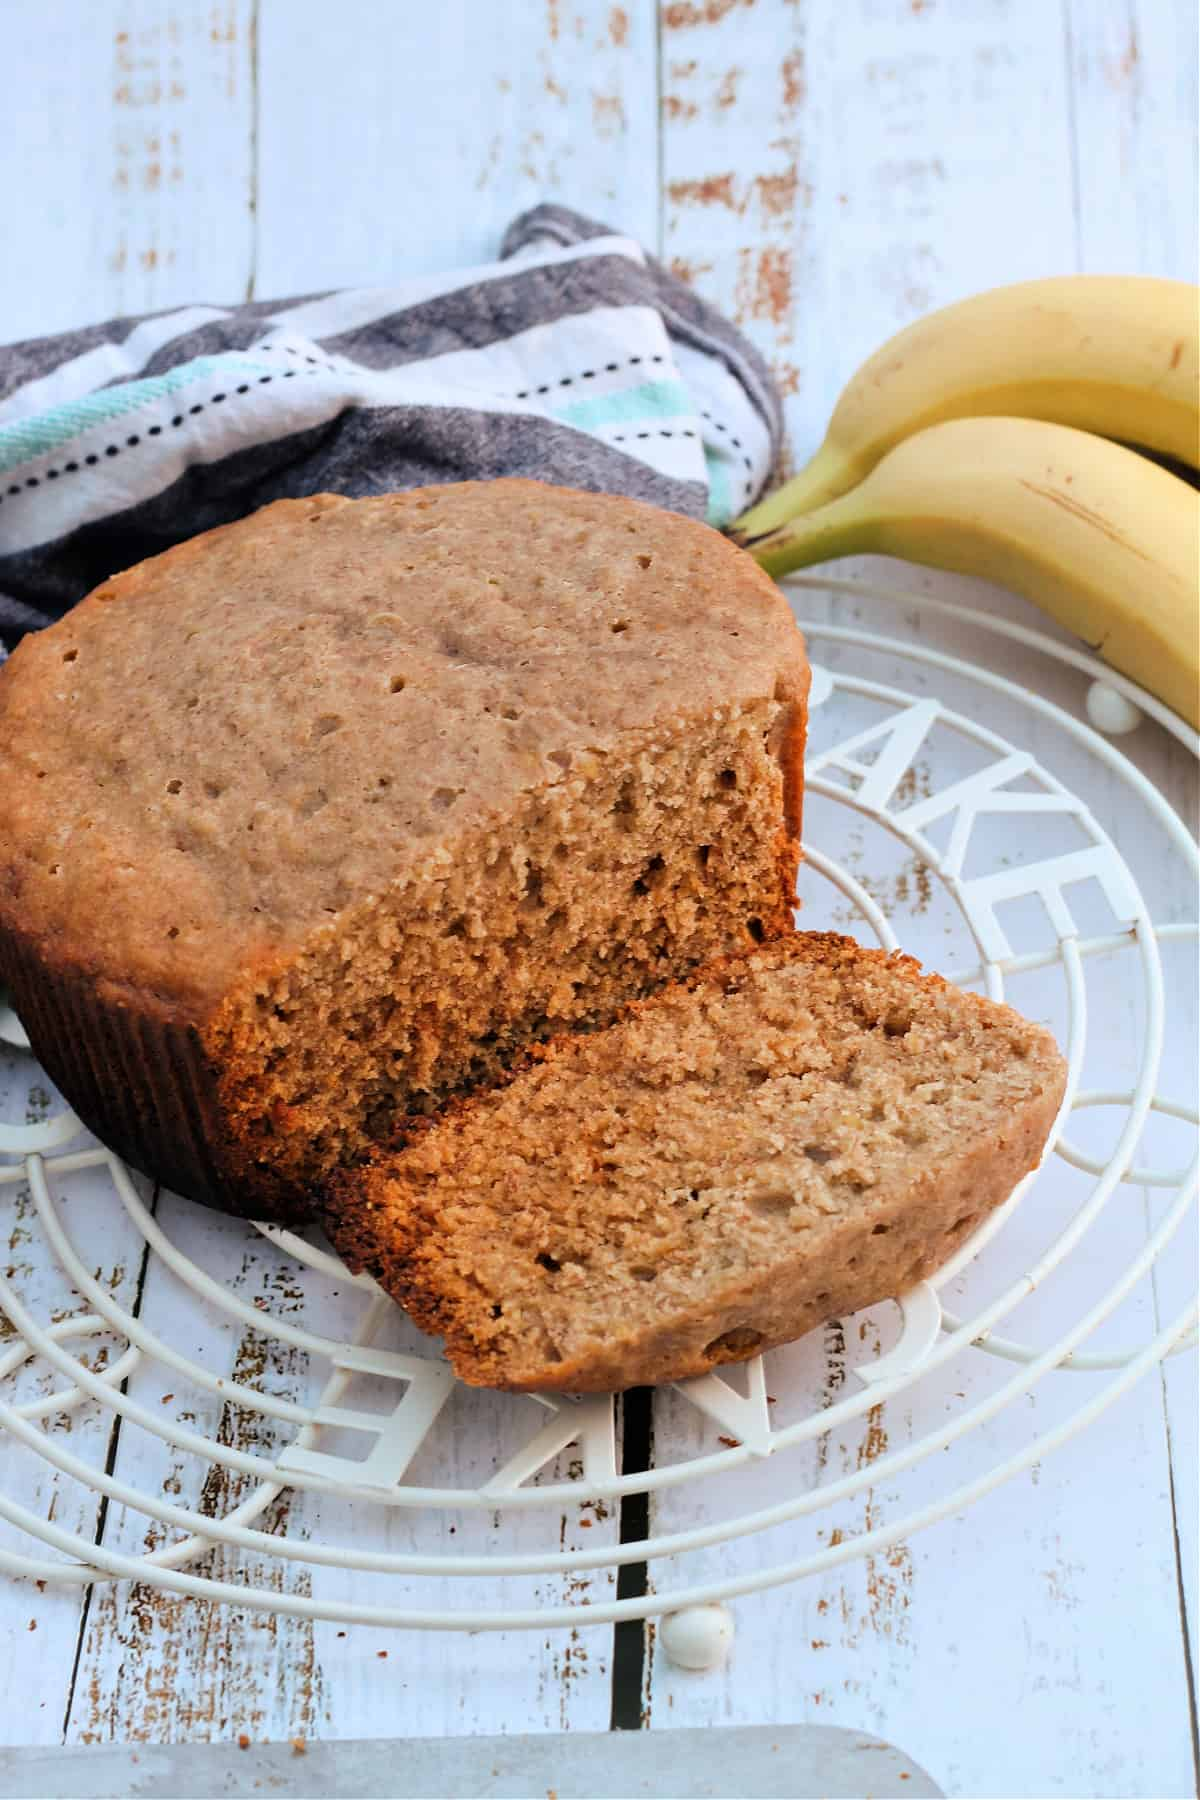 Banana bread on a cooling rack, one slice cut ready to eat.